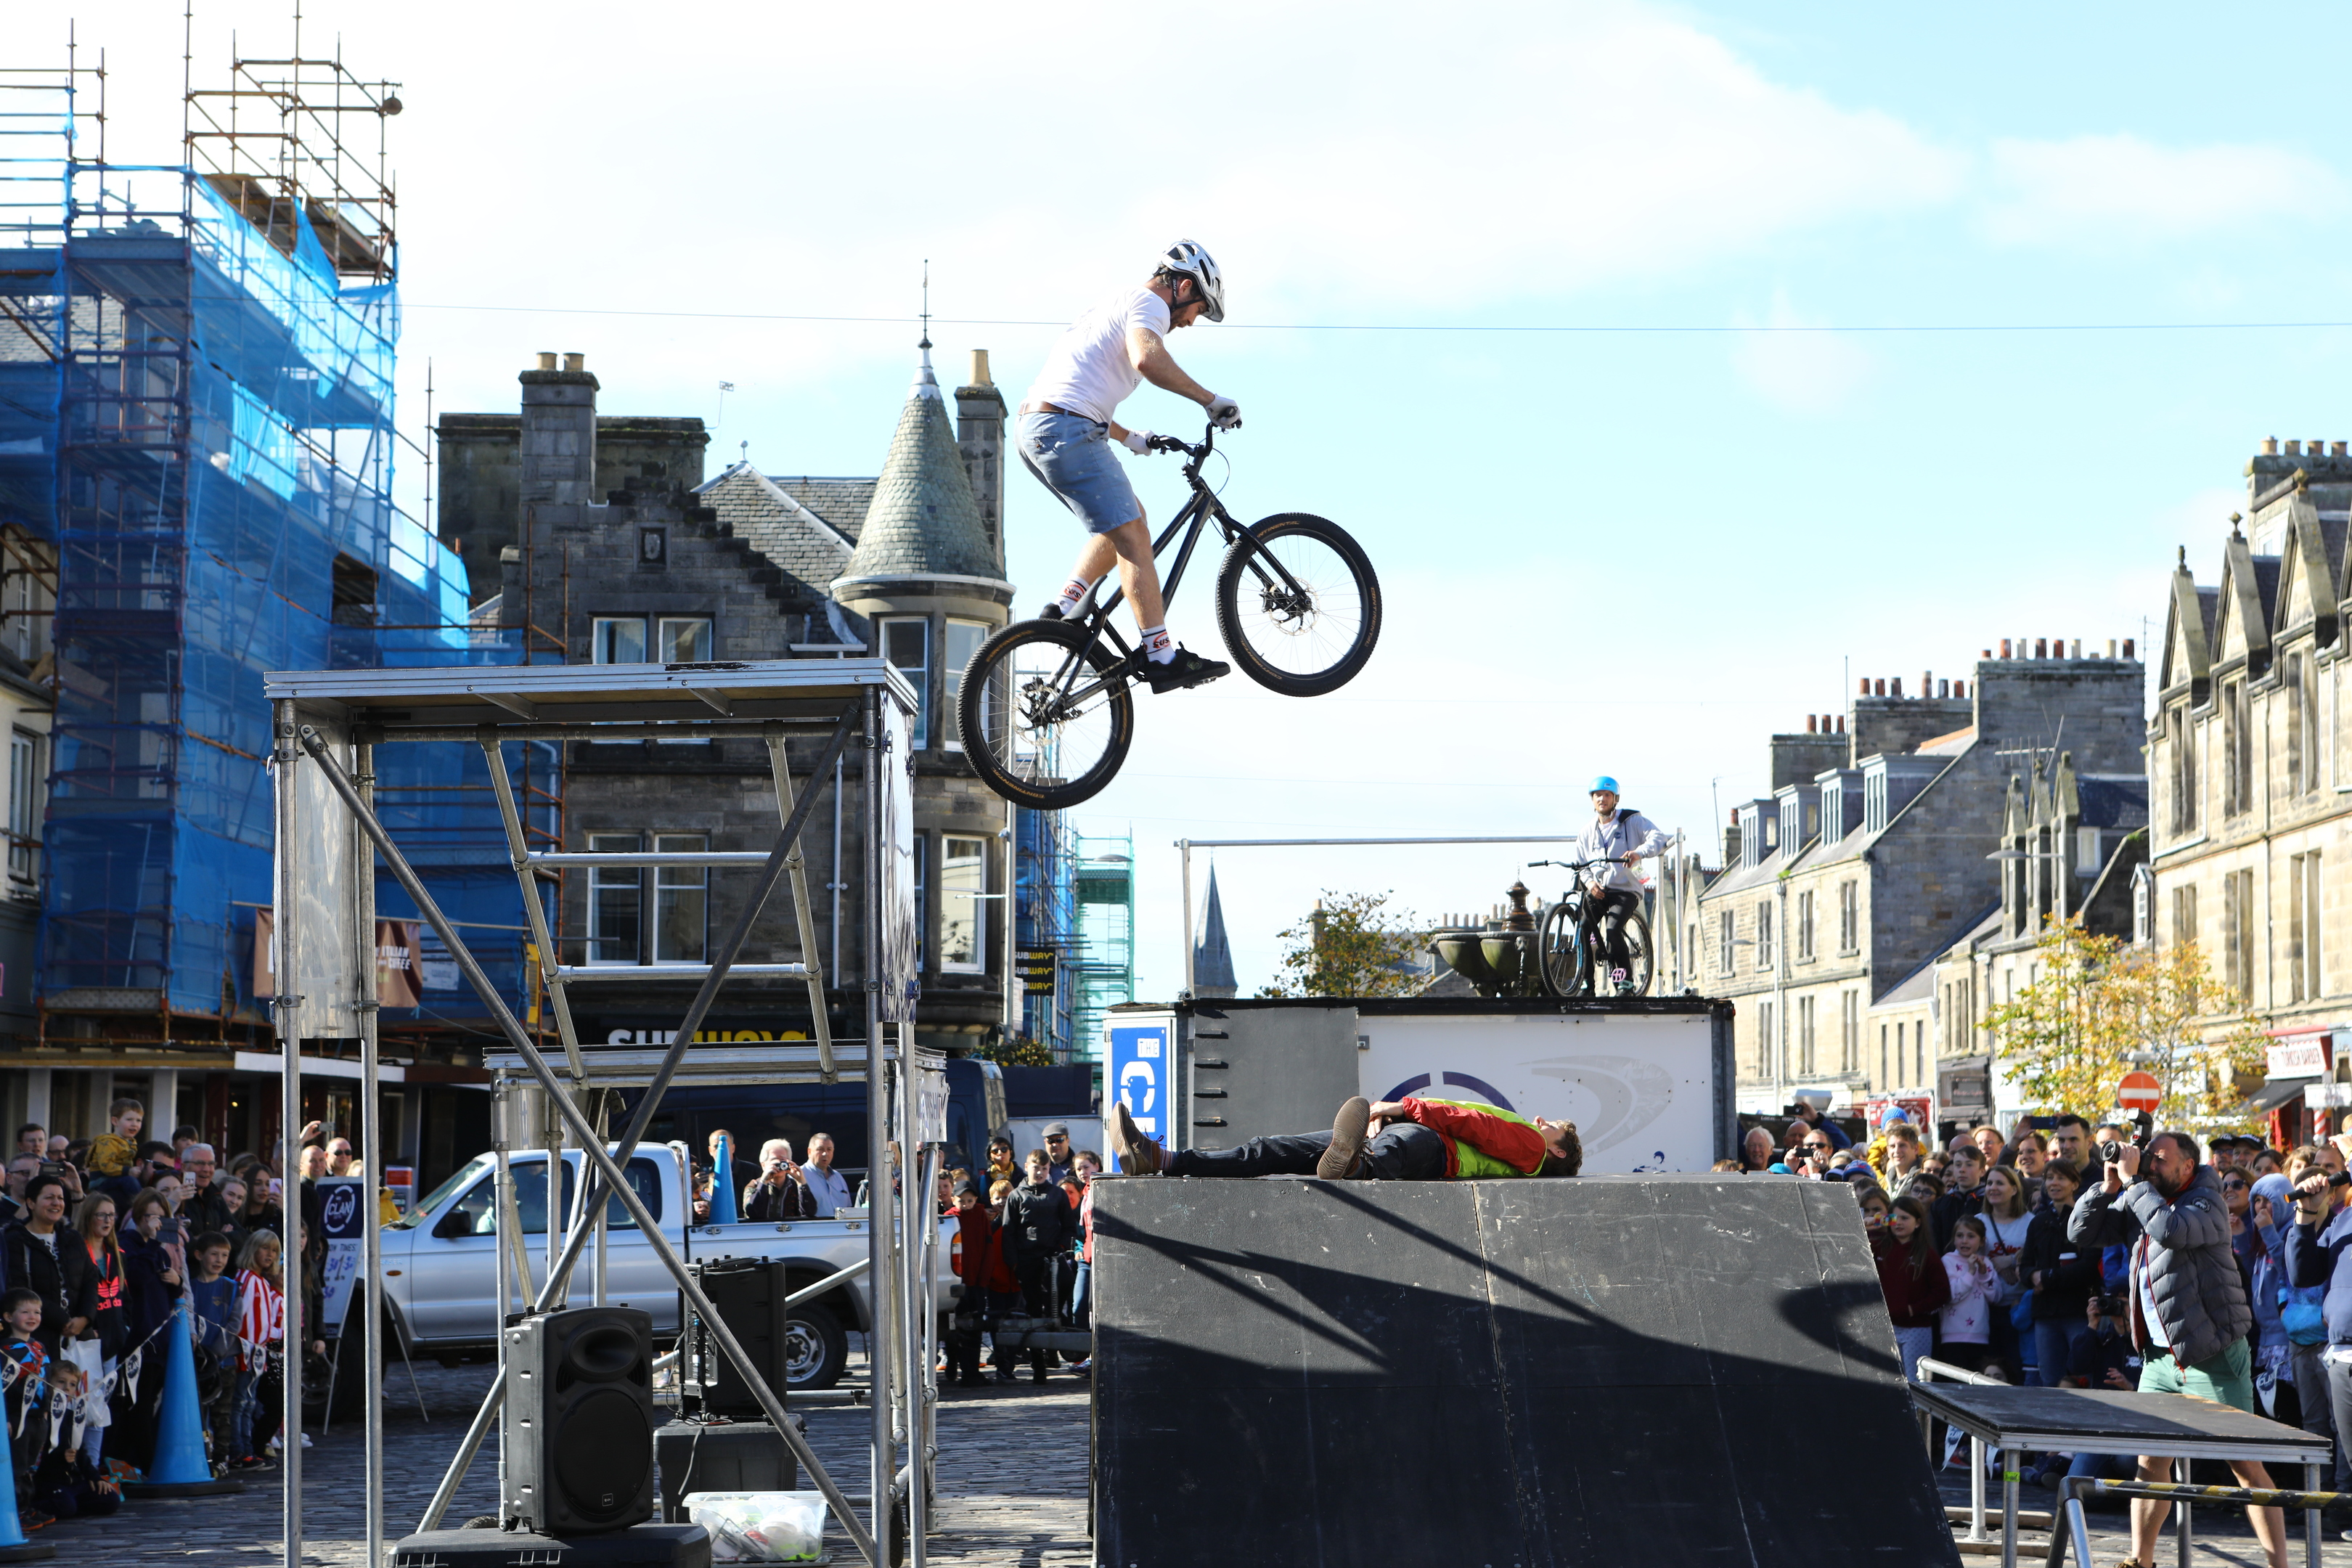 The Clan Stunt Bike Team performed a fantastic display, with one of the event organisers, Alistair Macleod (willingly!) taking part, at the Car Free Day in Market Street, St Andrews.